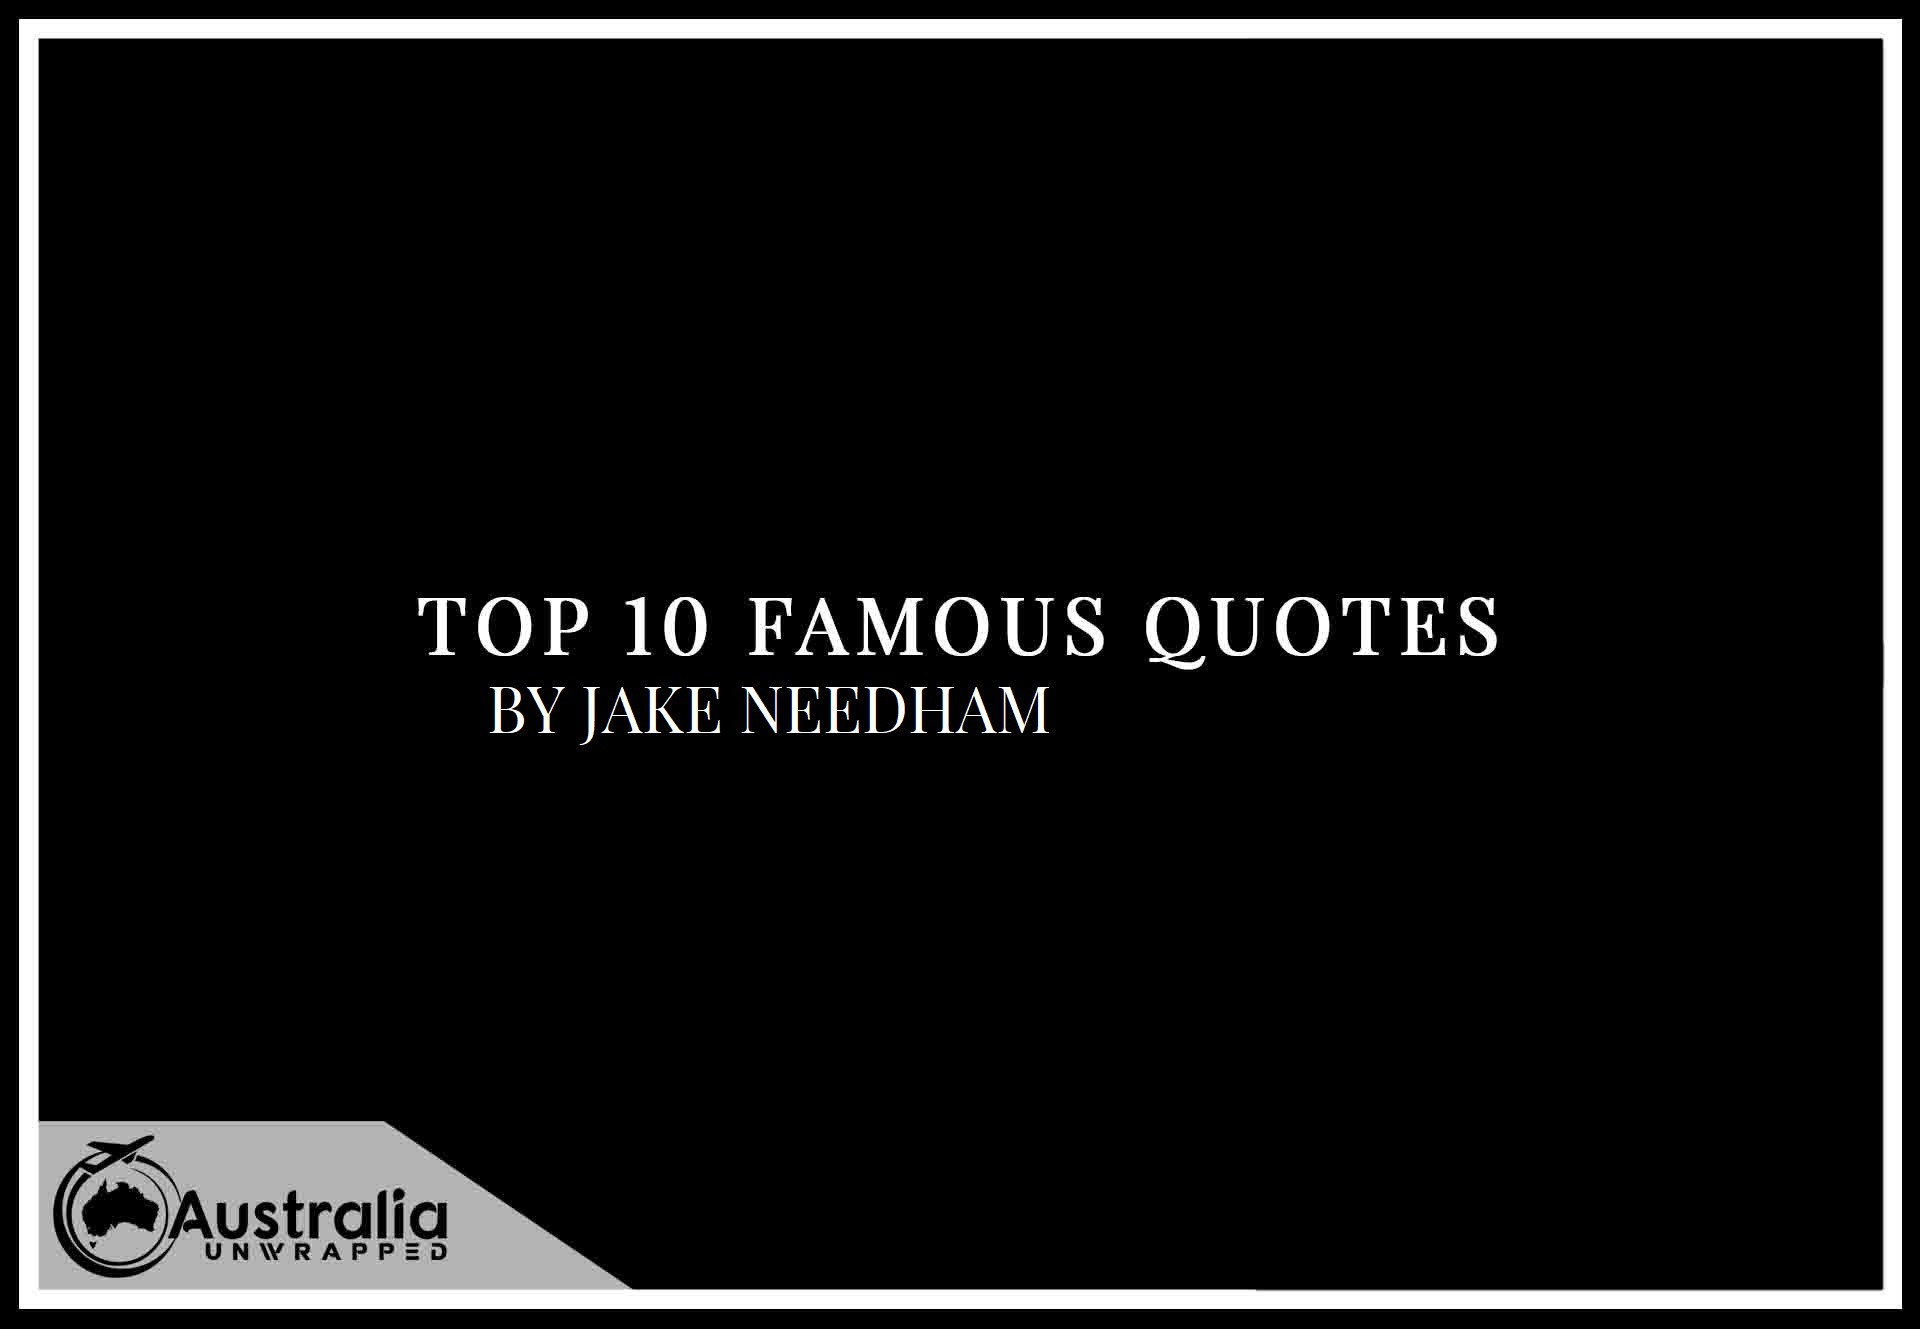 Top 10 Famous Quotes by Author Jake Needham